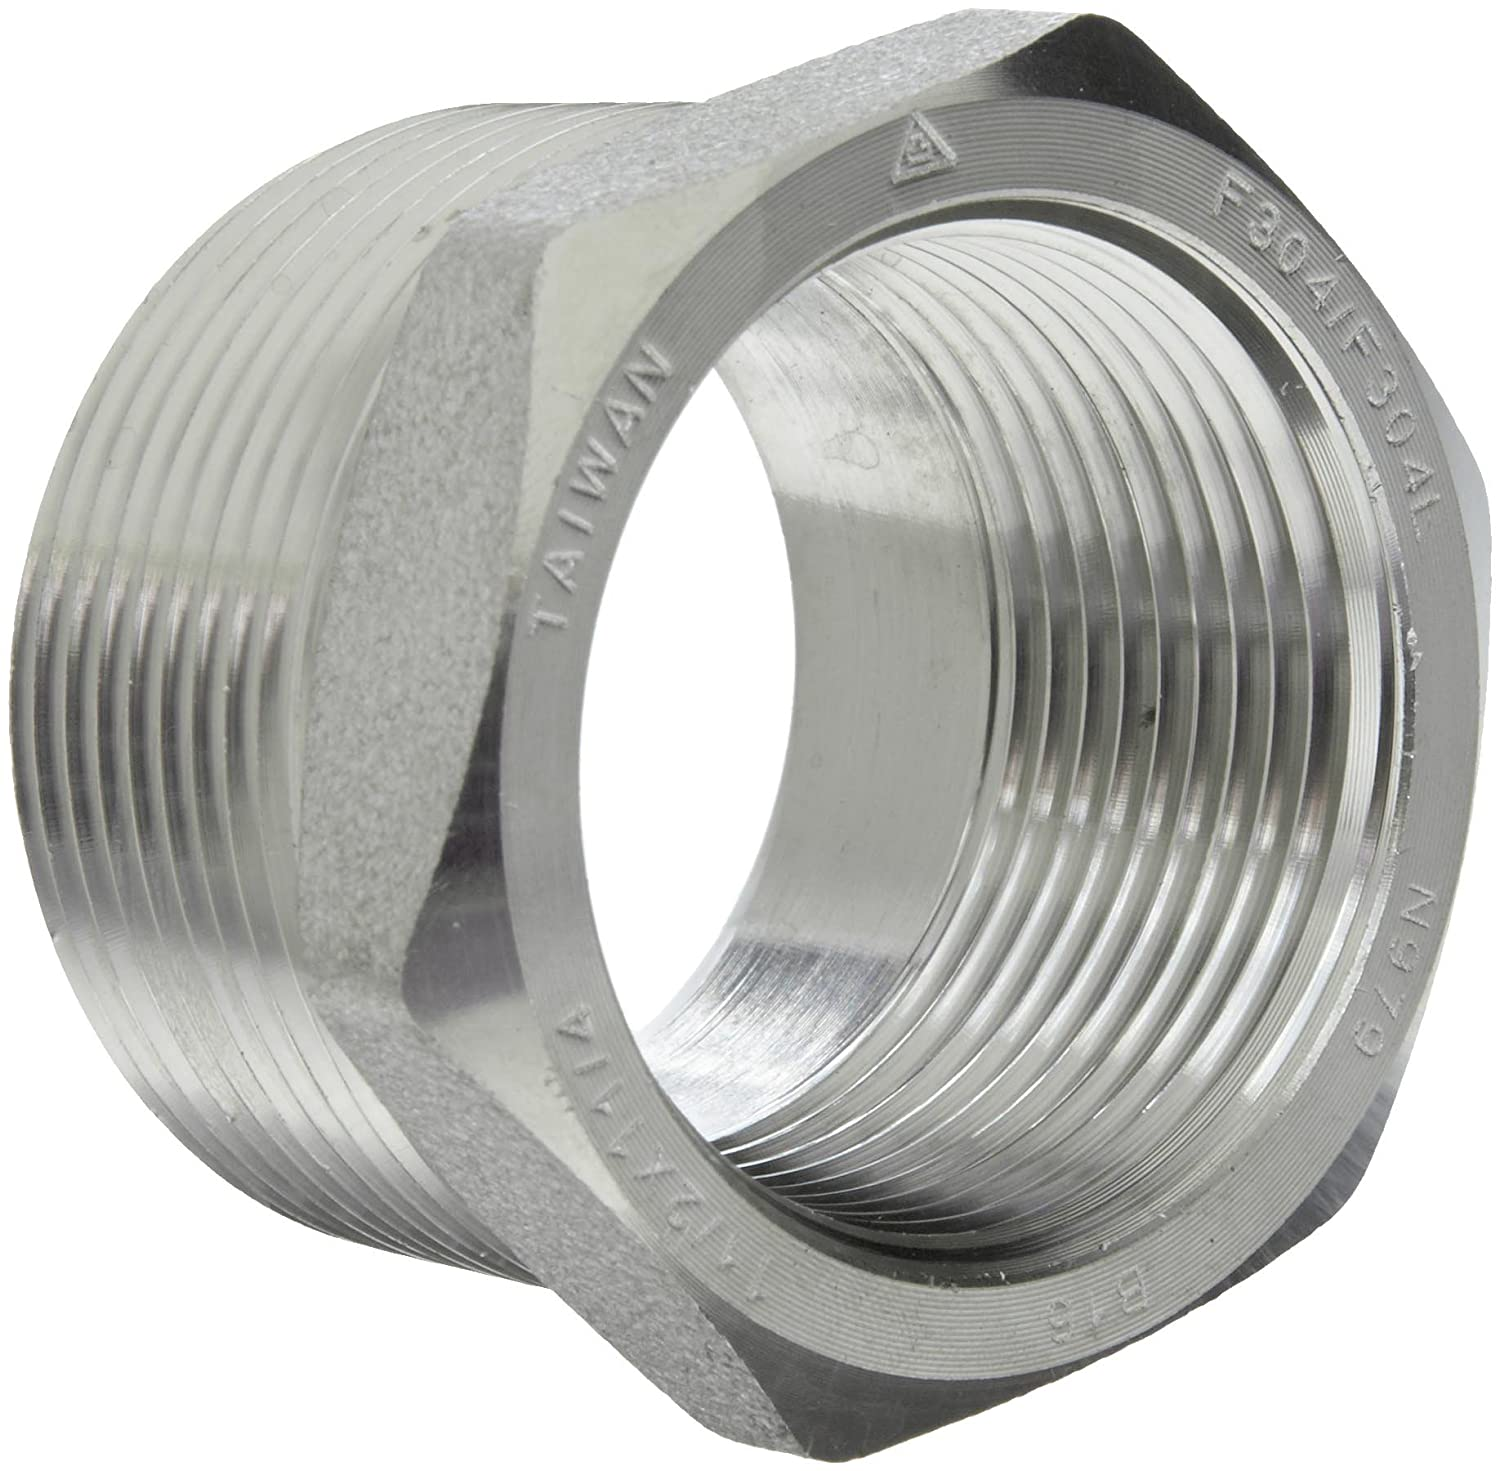 304//304L Forged Stainless Steel Pipe Fitting Bushing 1 NPT Male X 3//4 NPT Female Class 3000